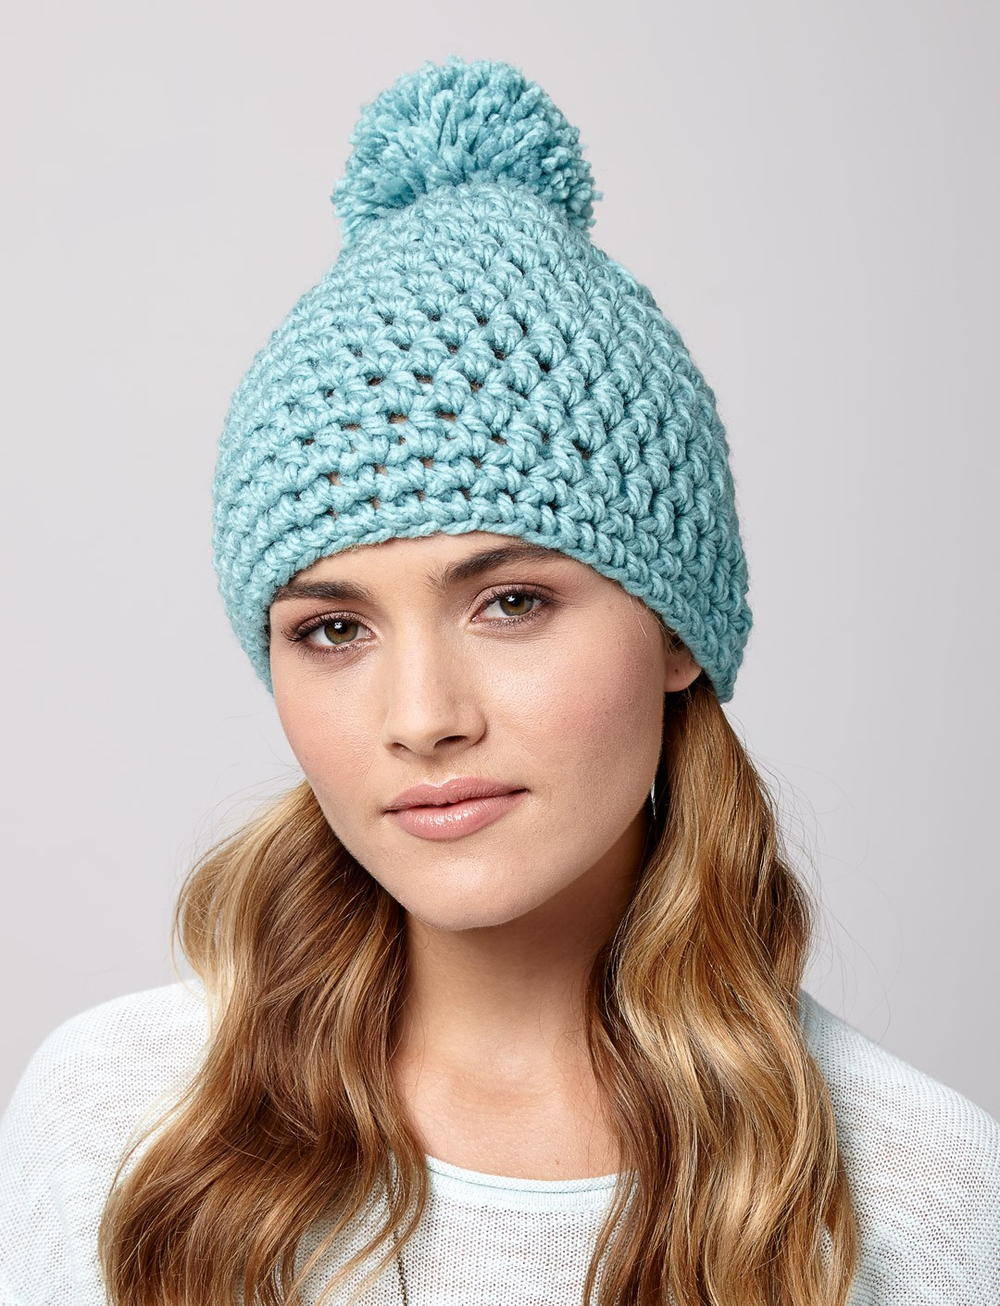 Crochet hat for a cool chic look